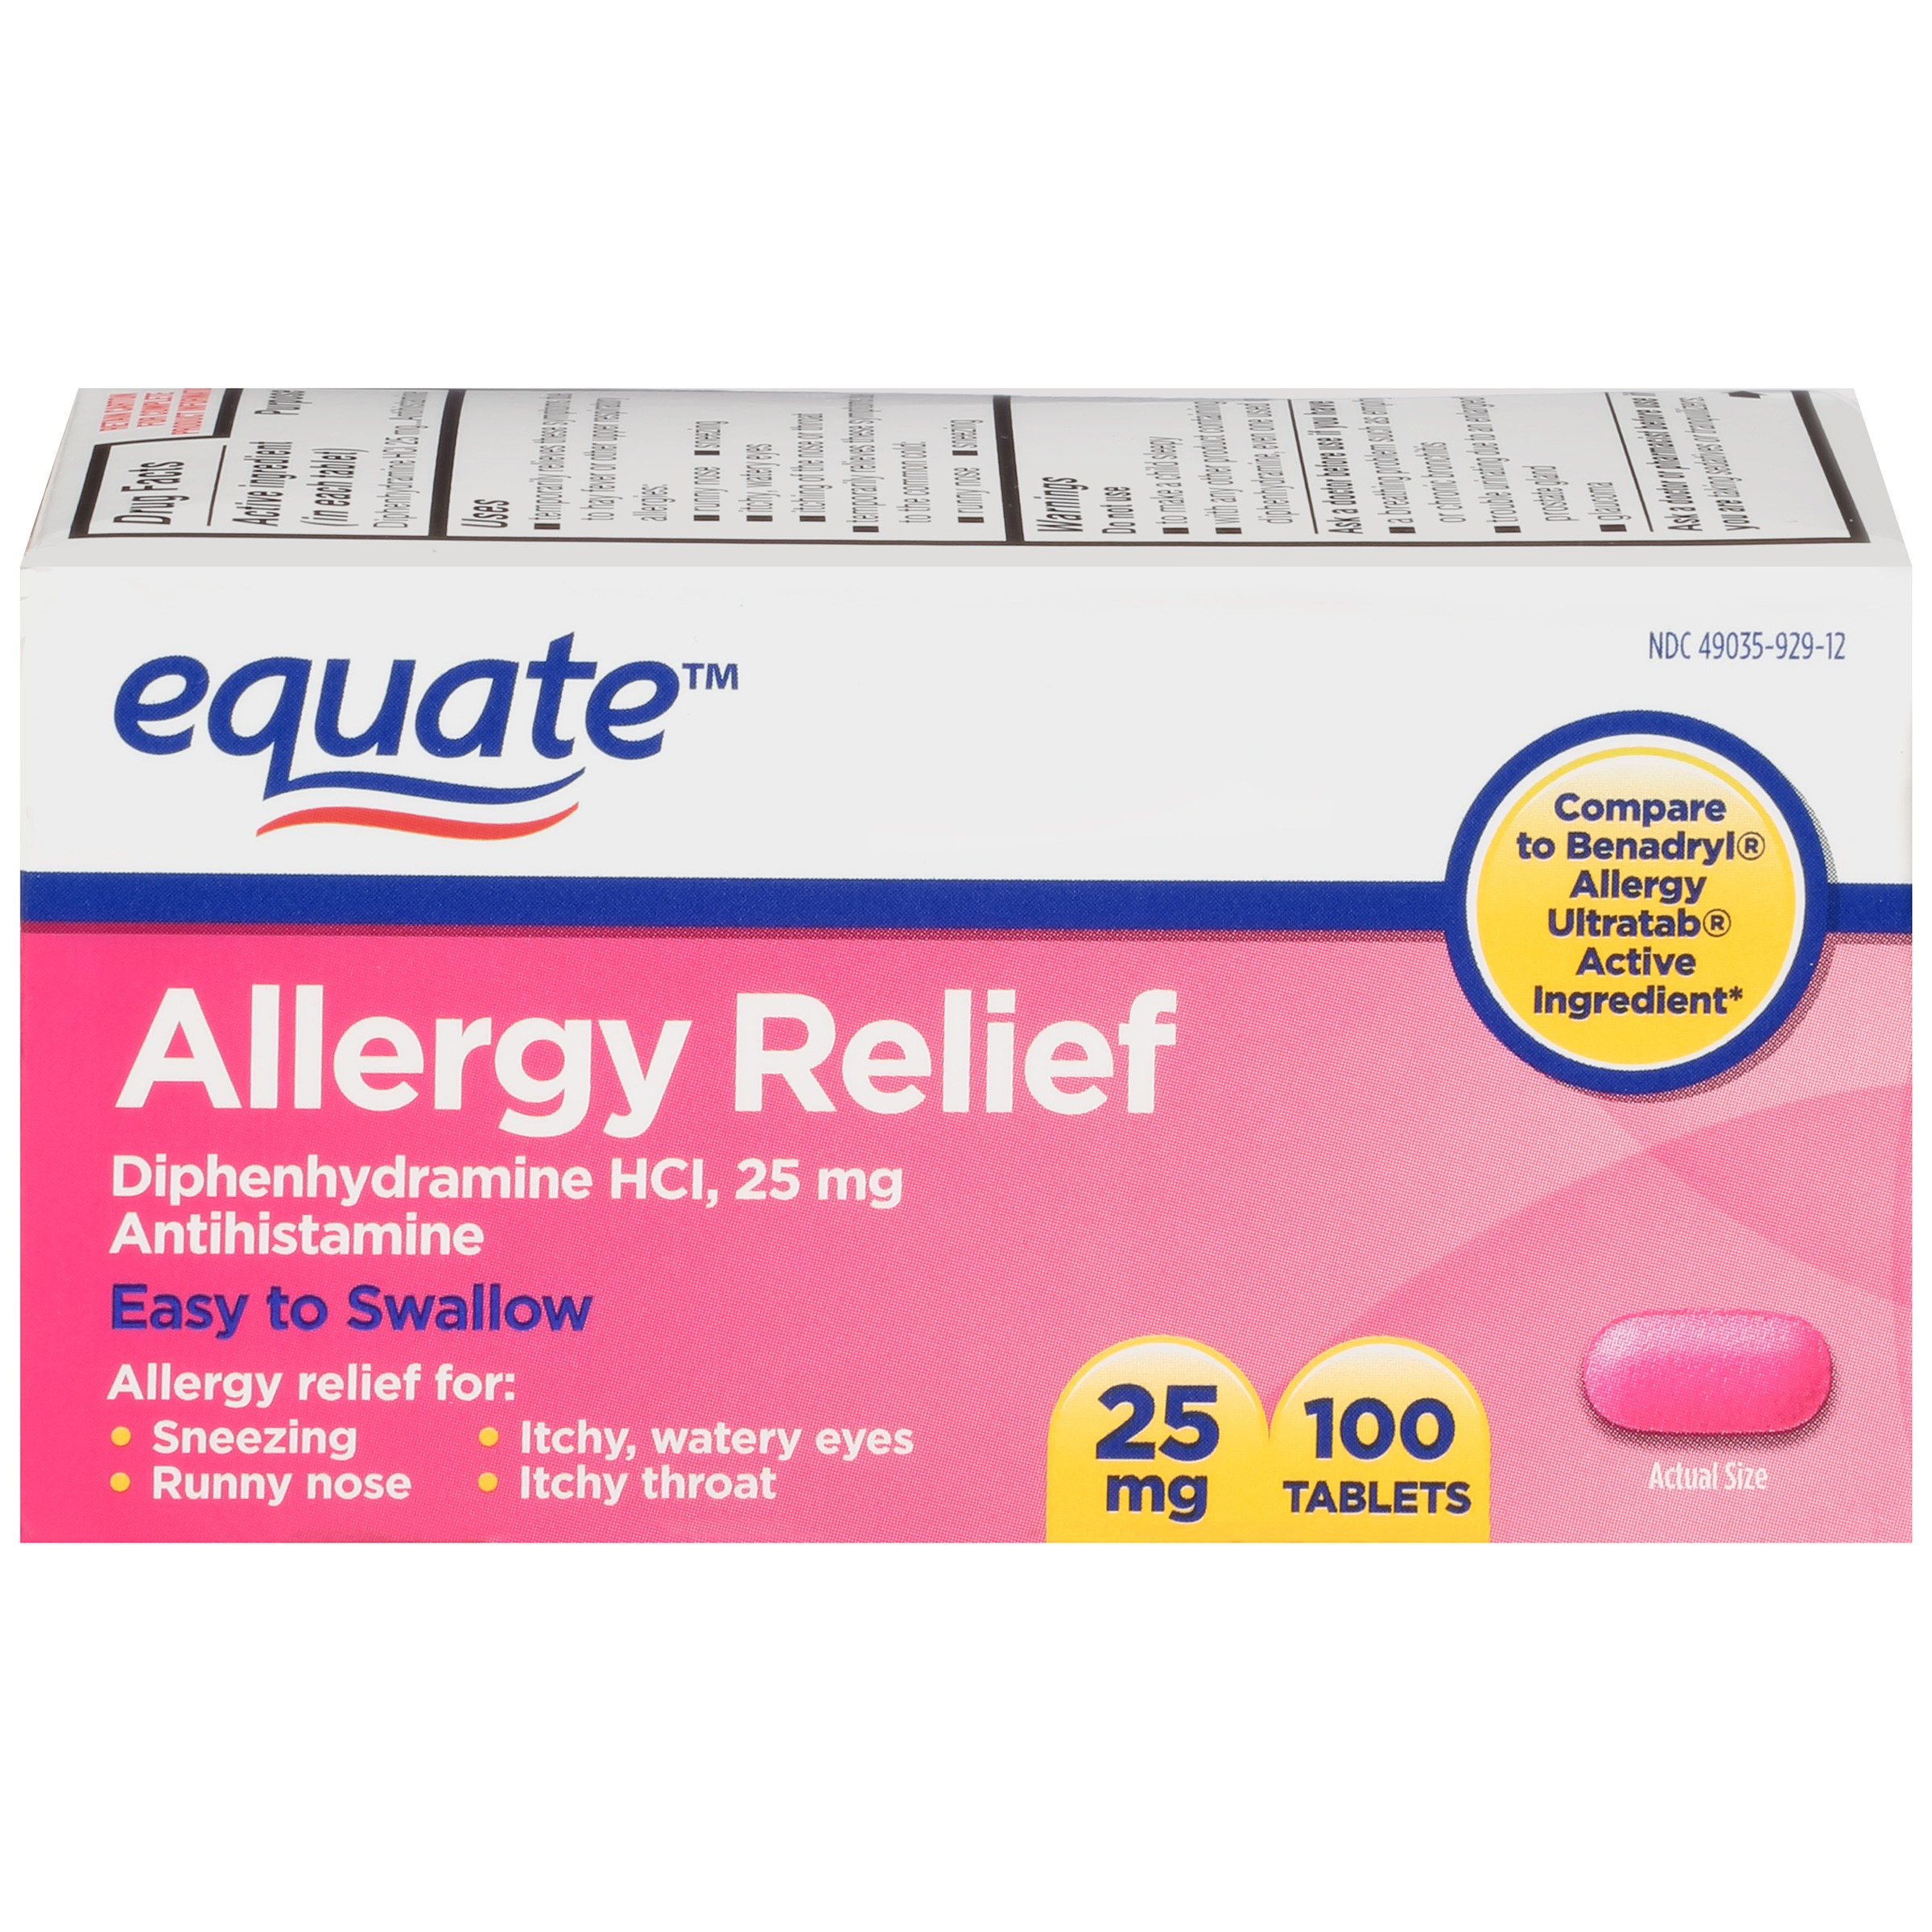 Equate Allergy Relief Diphenhydramine Tablets, 25 mg, 100 Ct